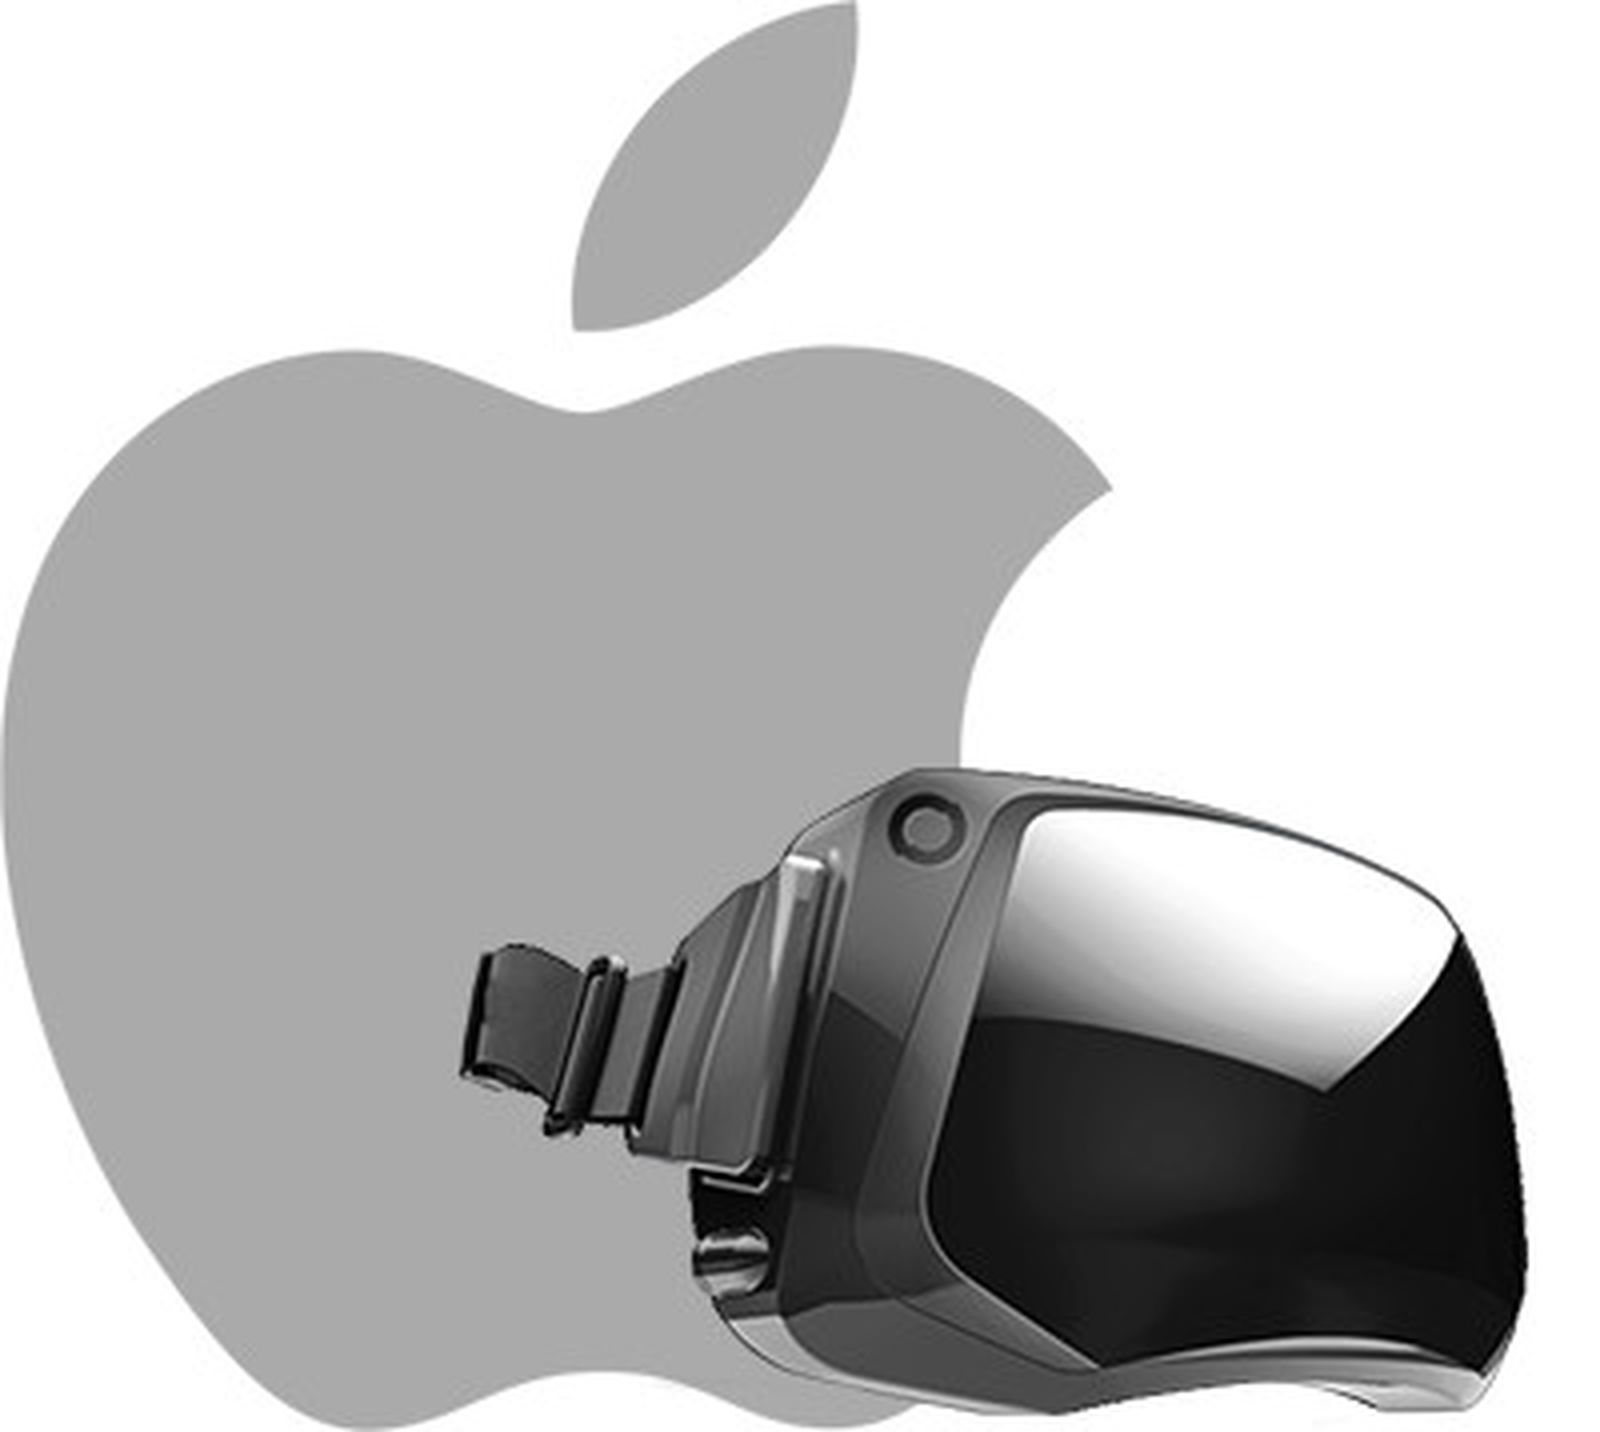 Apple Working on ARVR Headset With 8K Displays and No